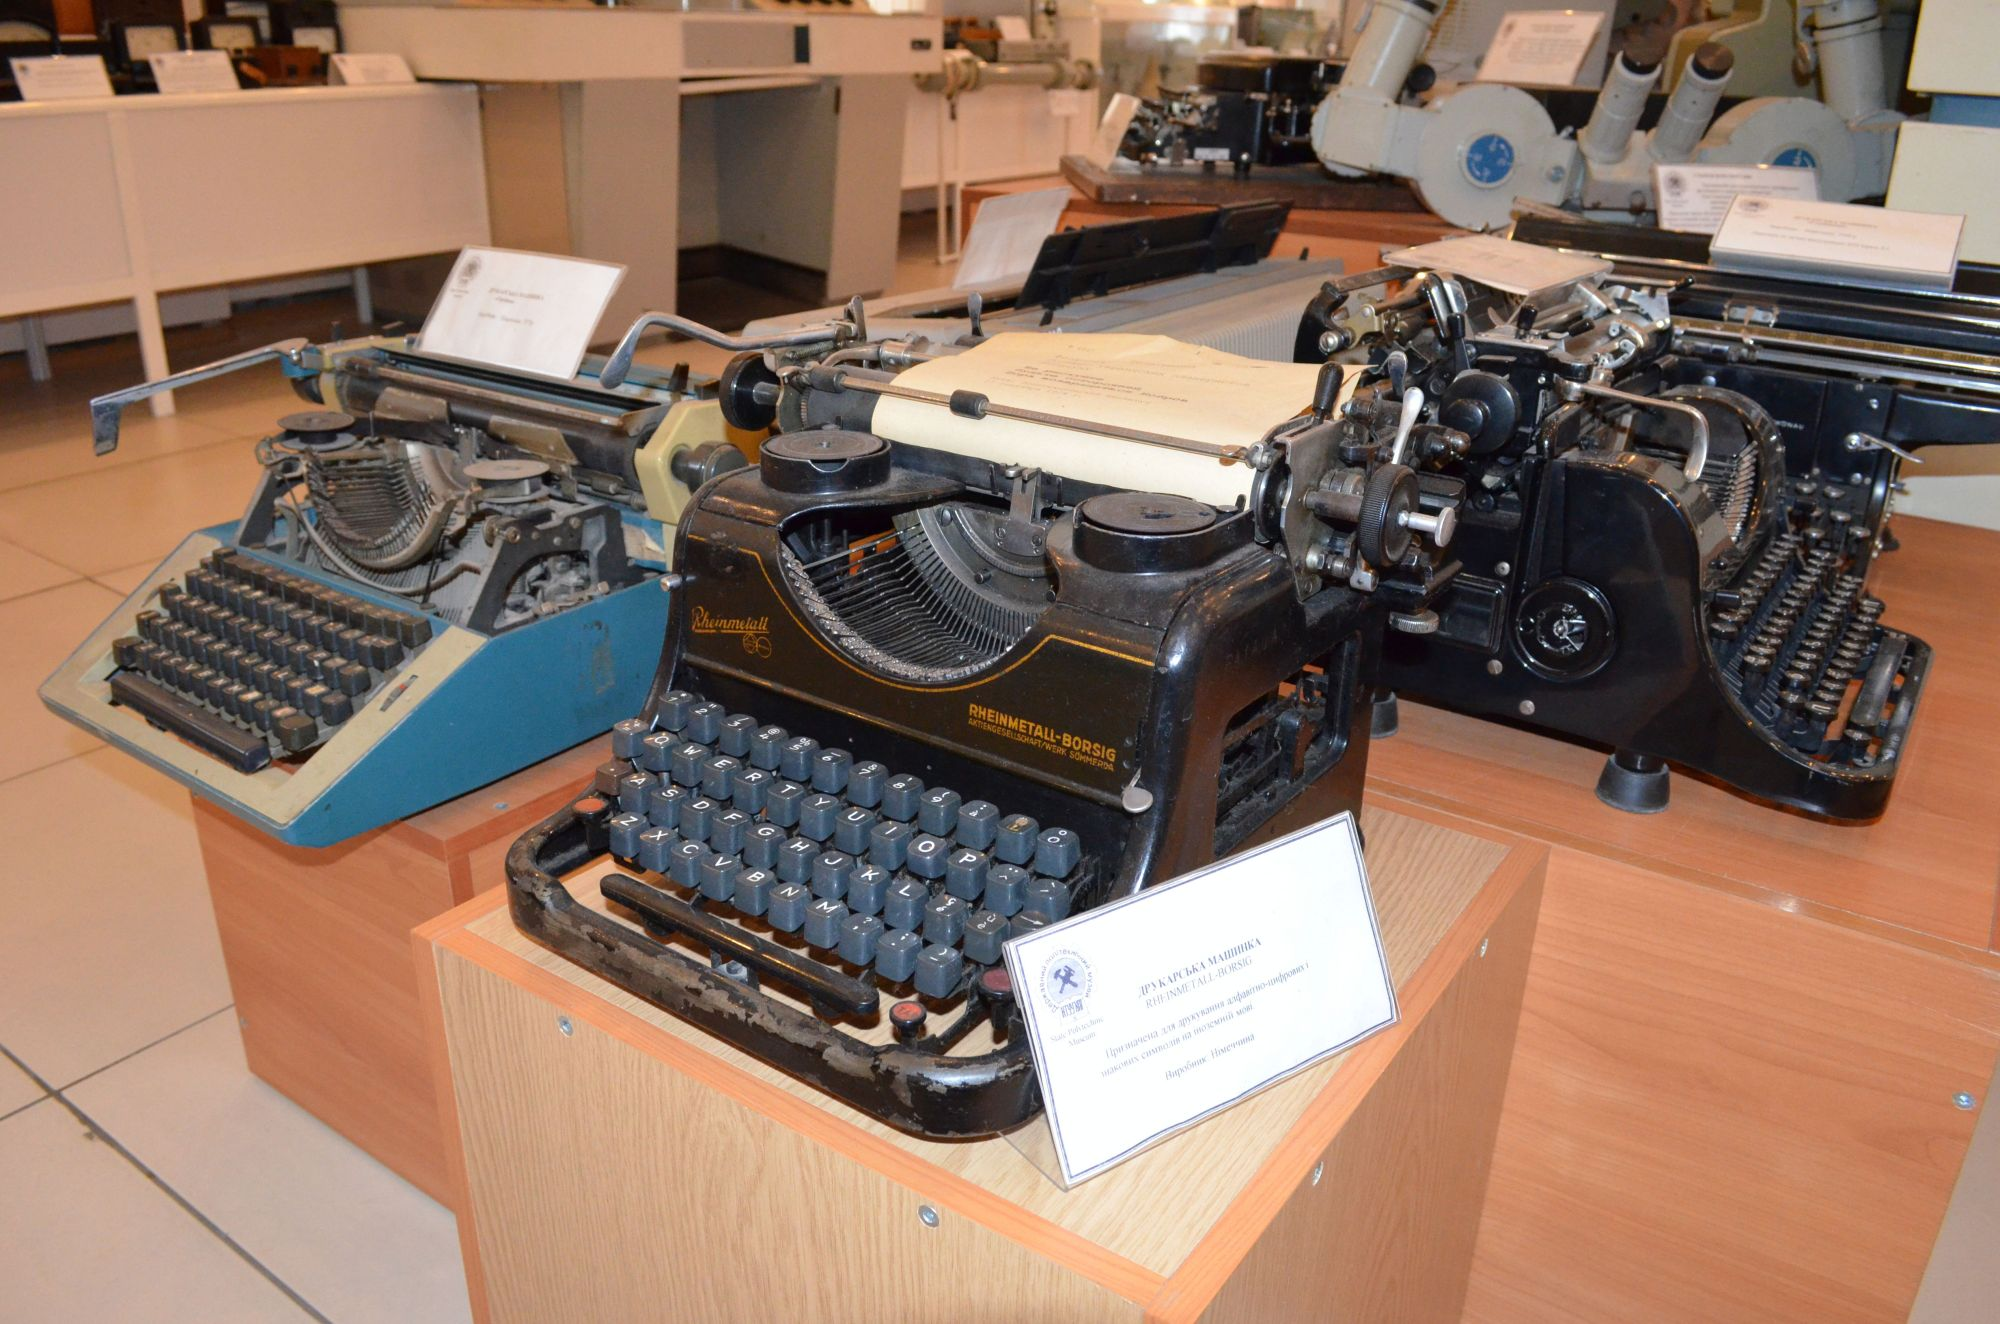 Typewriter KPI machines